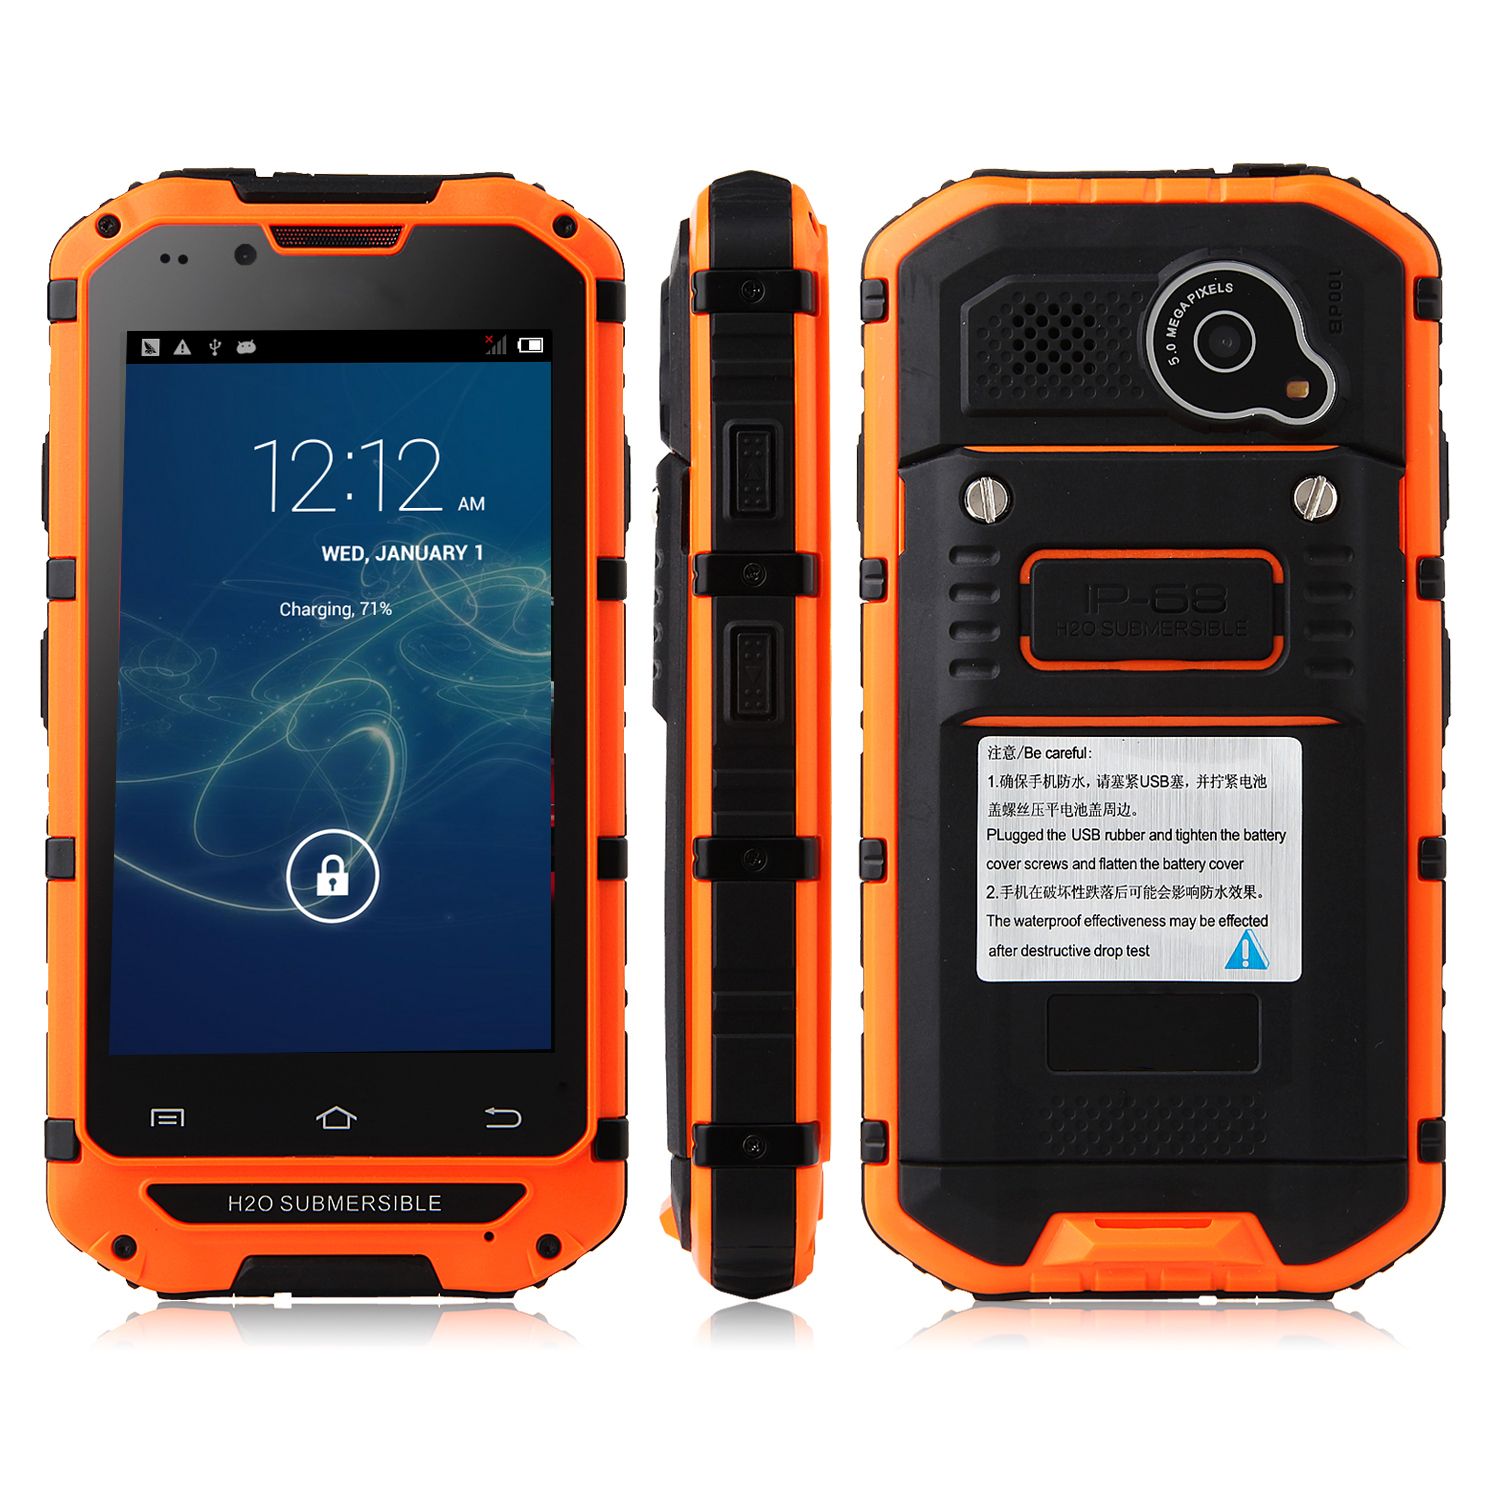 Tengda V6 Smartphone IP68 Android 4.2 MTK6572 4.0 Inch WiFi Orange